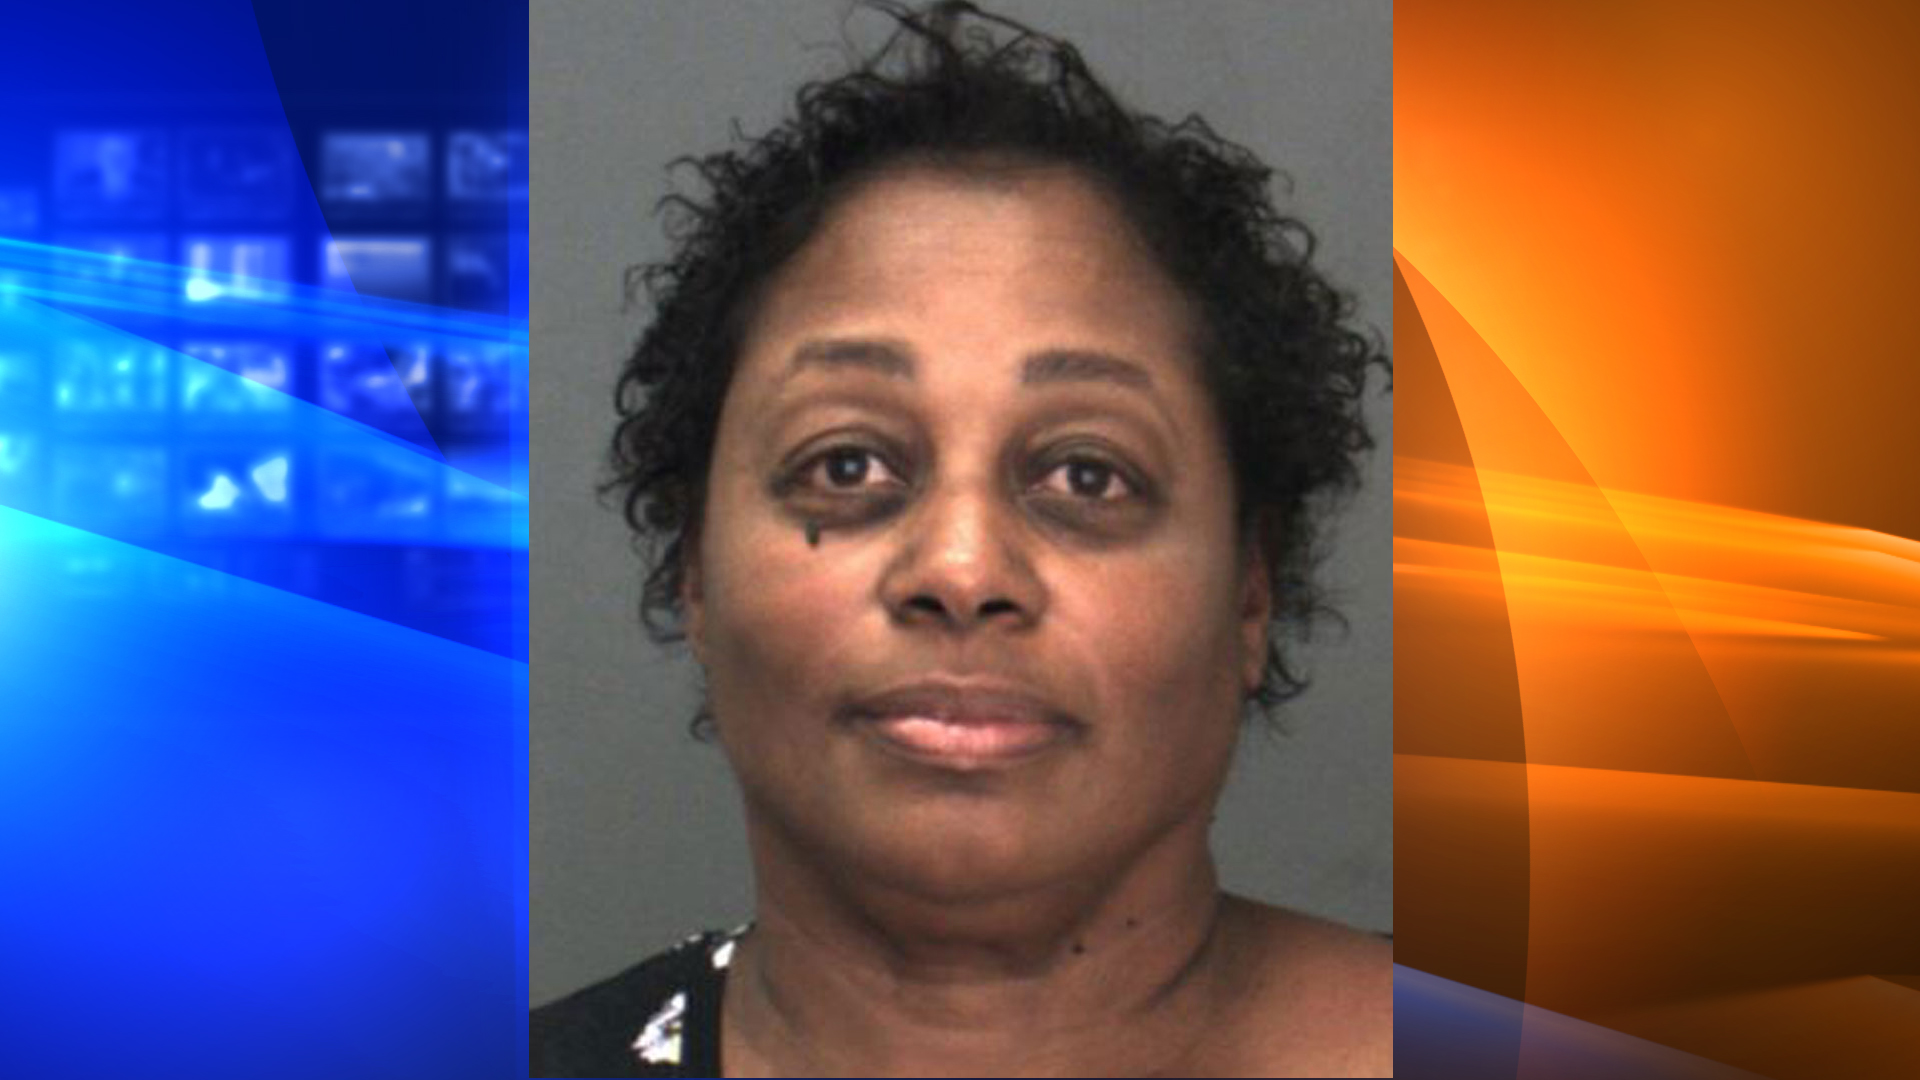 Rosalind Drinkard-Batiste is seen in a booking photo released by the San Bernardino County Sheriff's Department on Nov. 5, 2019.